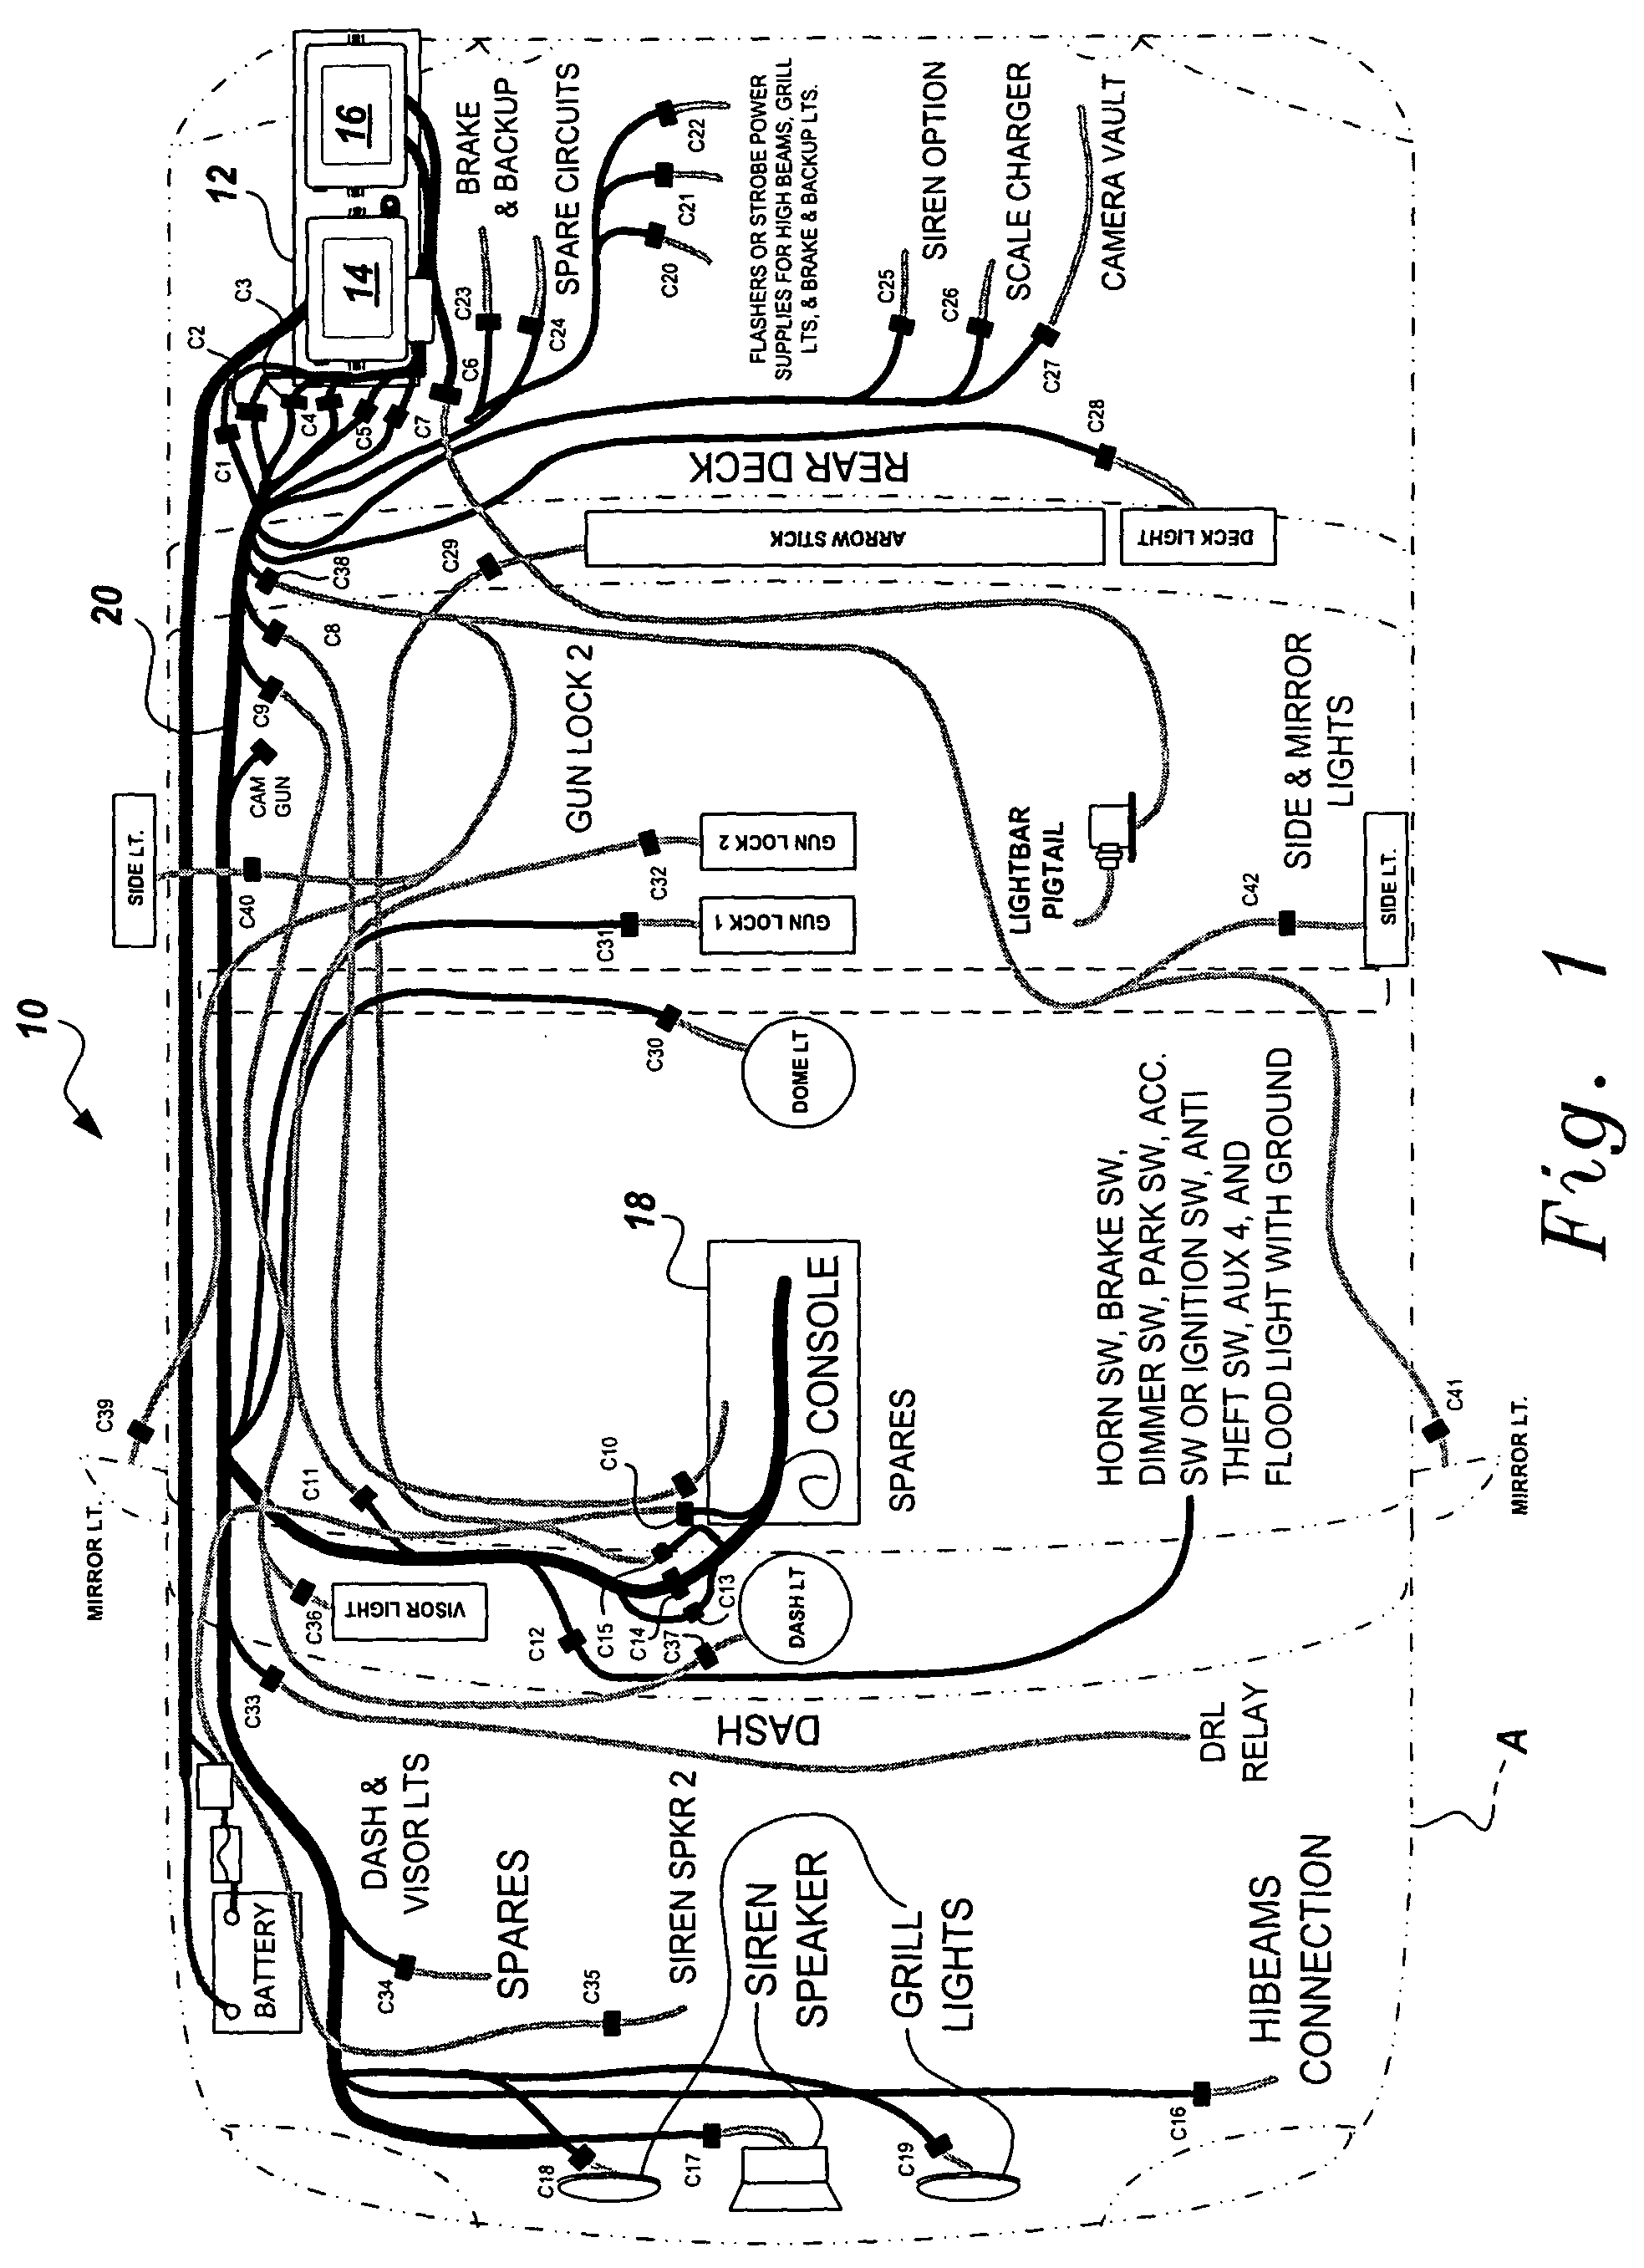 Cat 3126 Injector Wiring Diagram